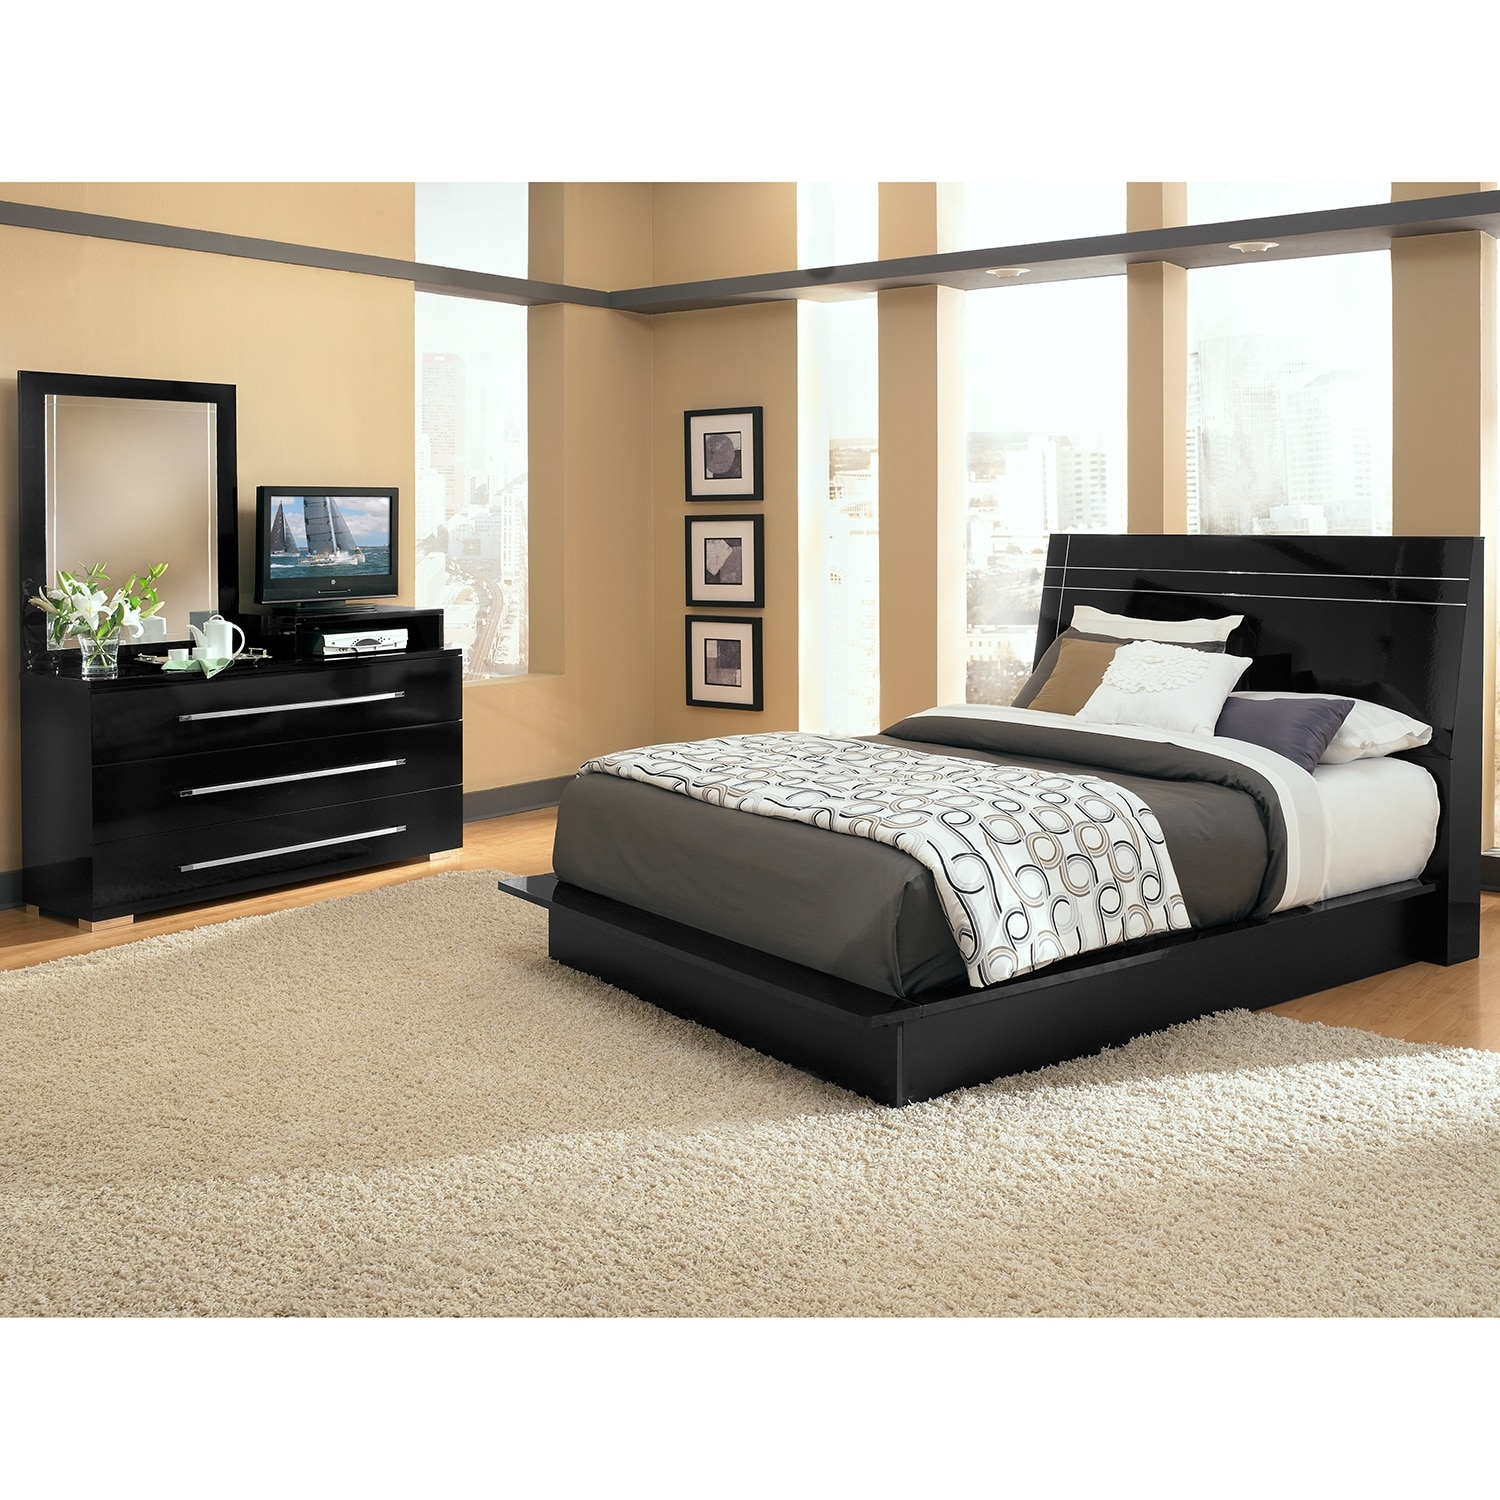 Dimora 5 Piece King Panel Bedroom Set With Media Dresser